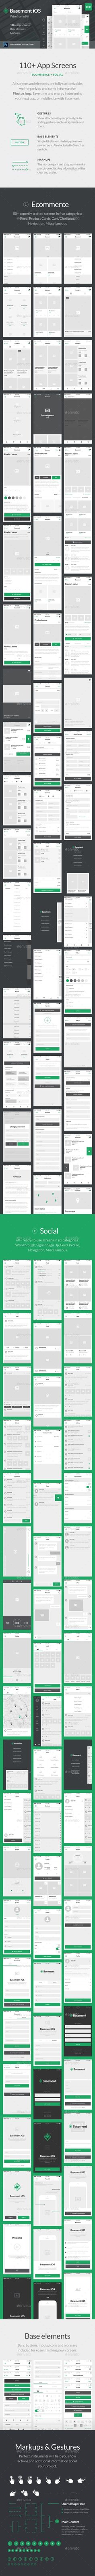 Basement iOS Wireframe Kit: 110+ App Screens for Photoshop - User Interfaces Web Elements